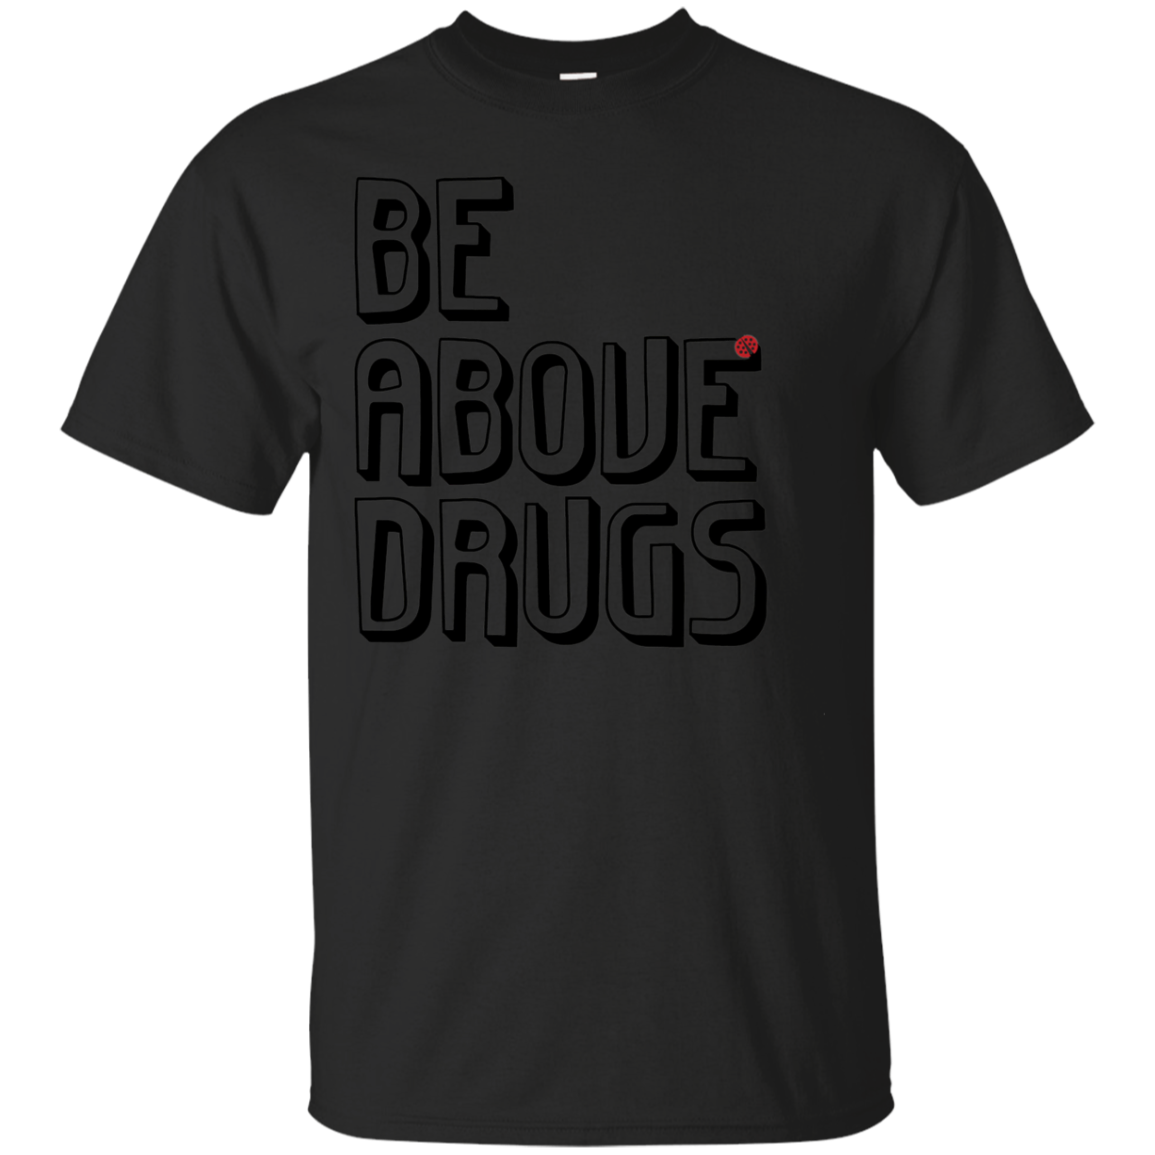 BAD Shadow Tee, Drug Free Apparel, Anti-Drug T-Shirt